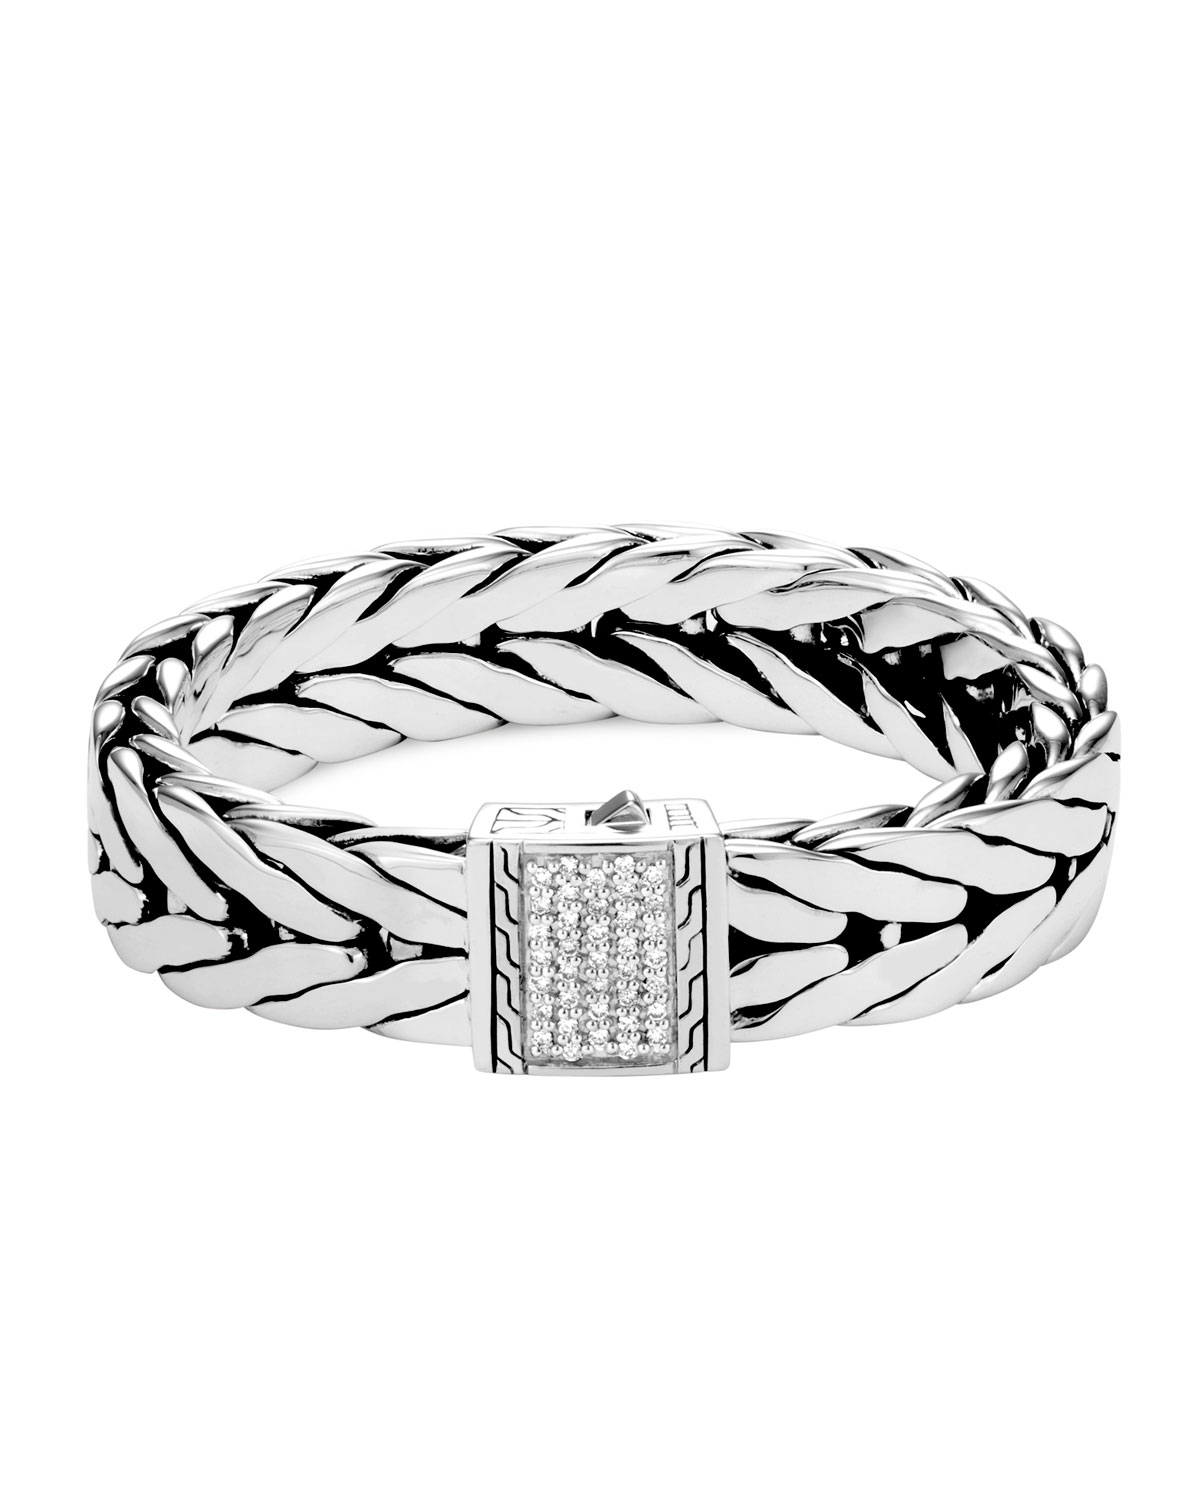 bangles dsc tennis bangle set silver product jo cubic zirconia bracelet large bezel bracelets